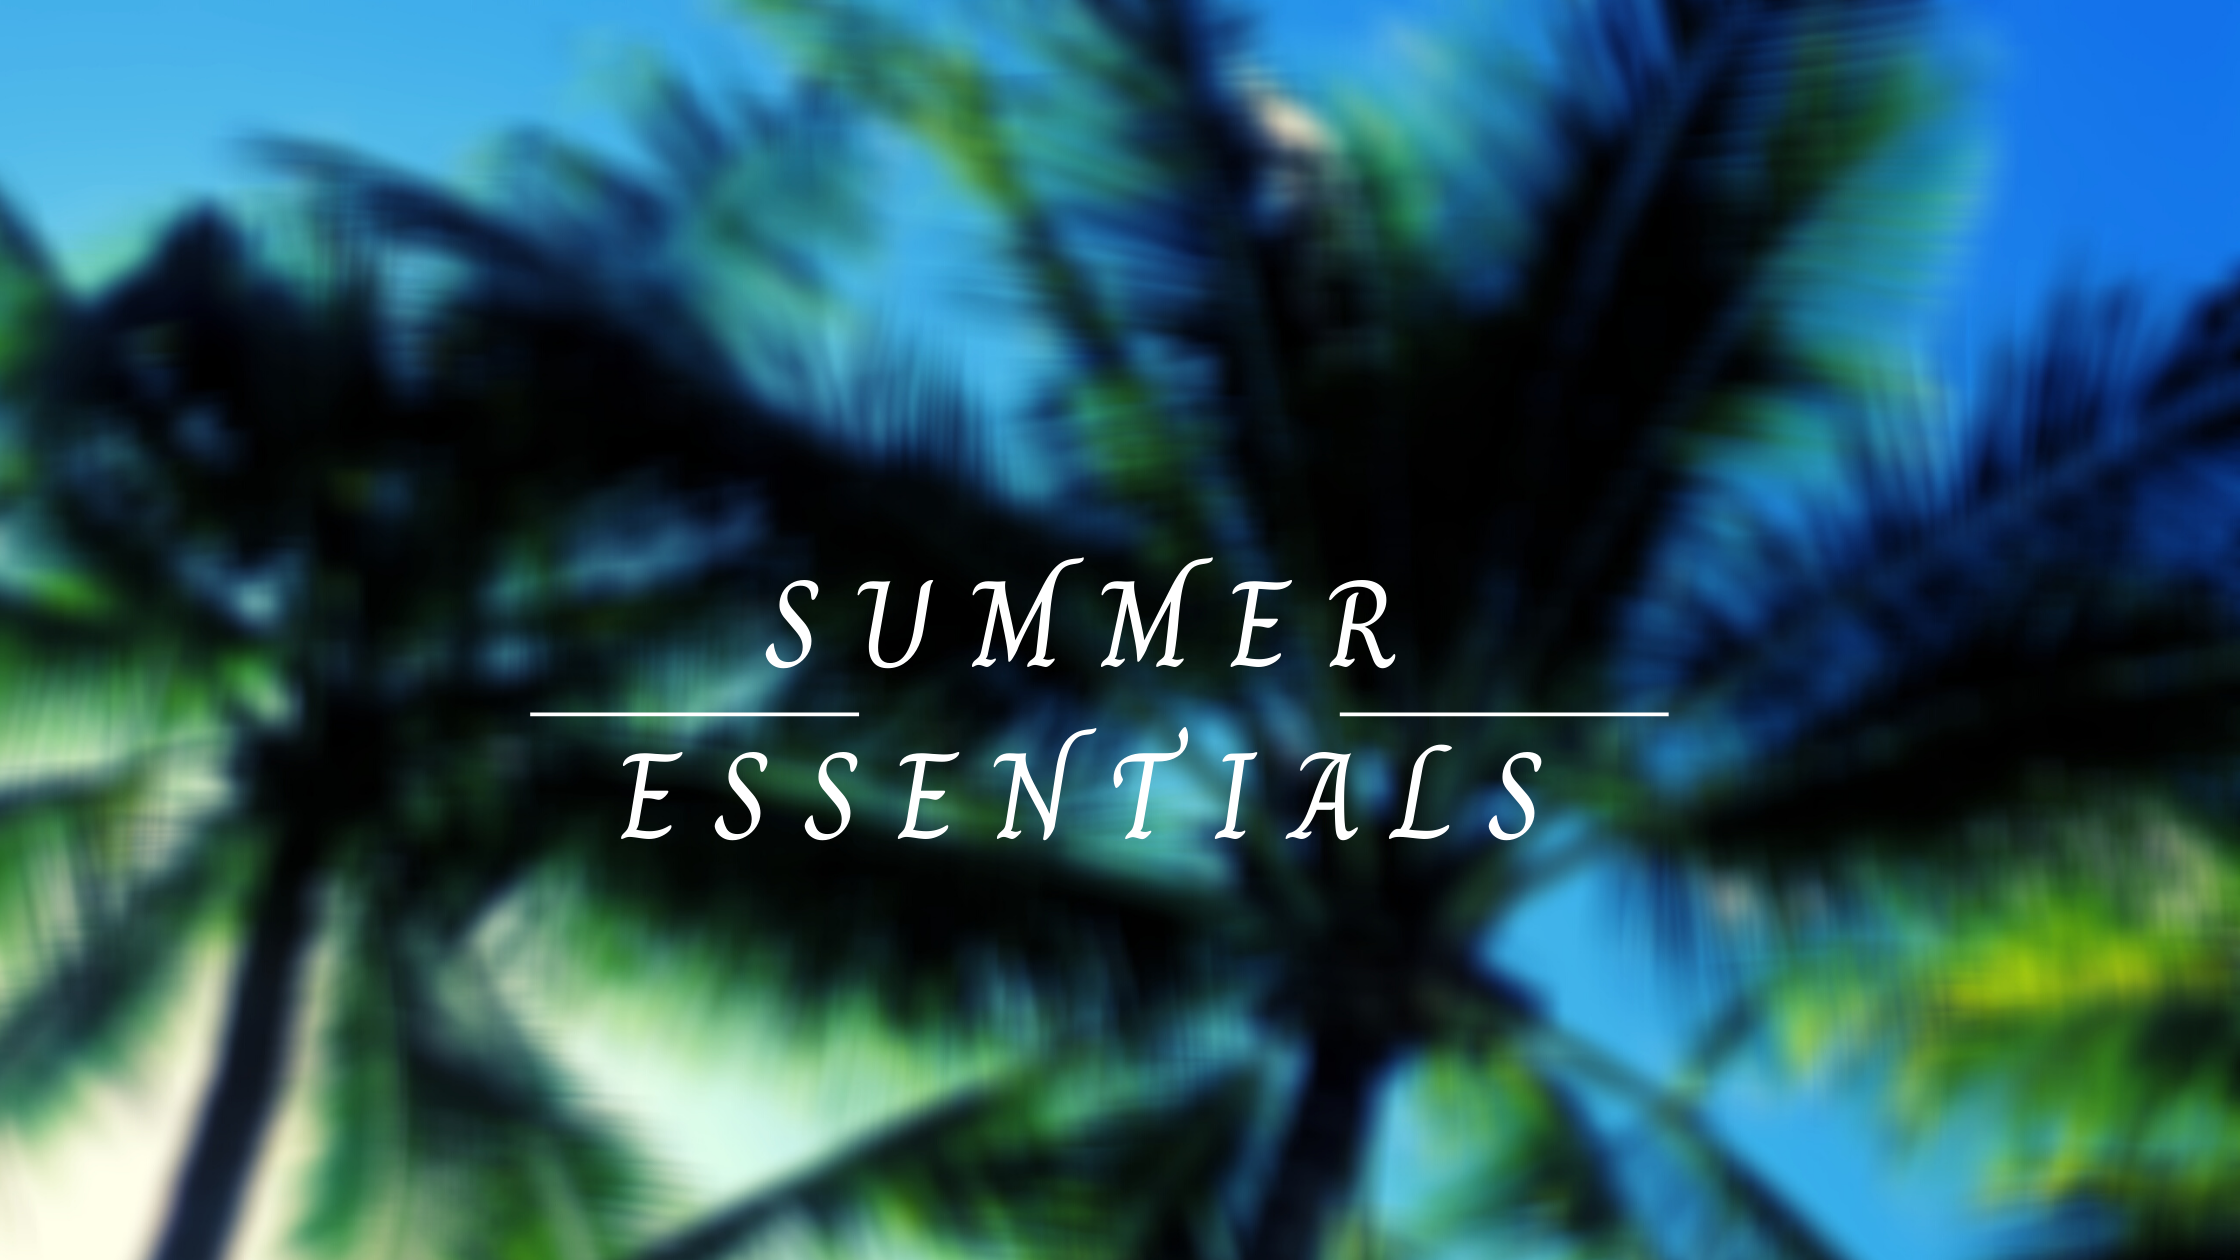 Best summer essentials |neveralonemom.com